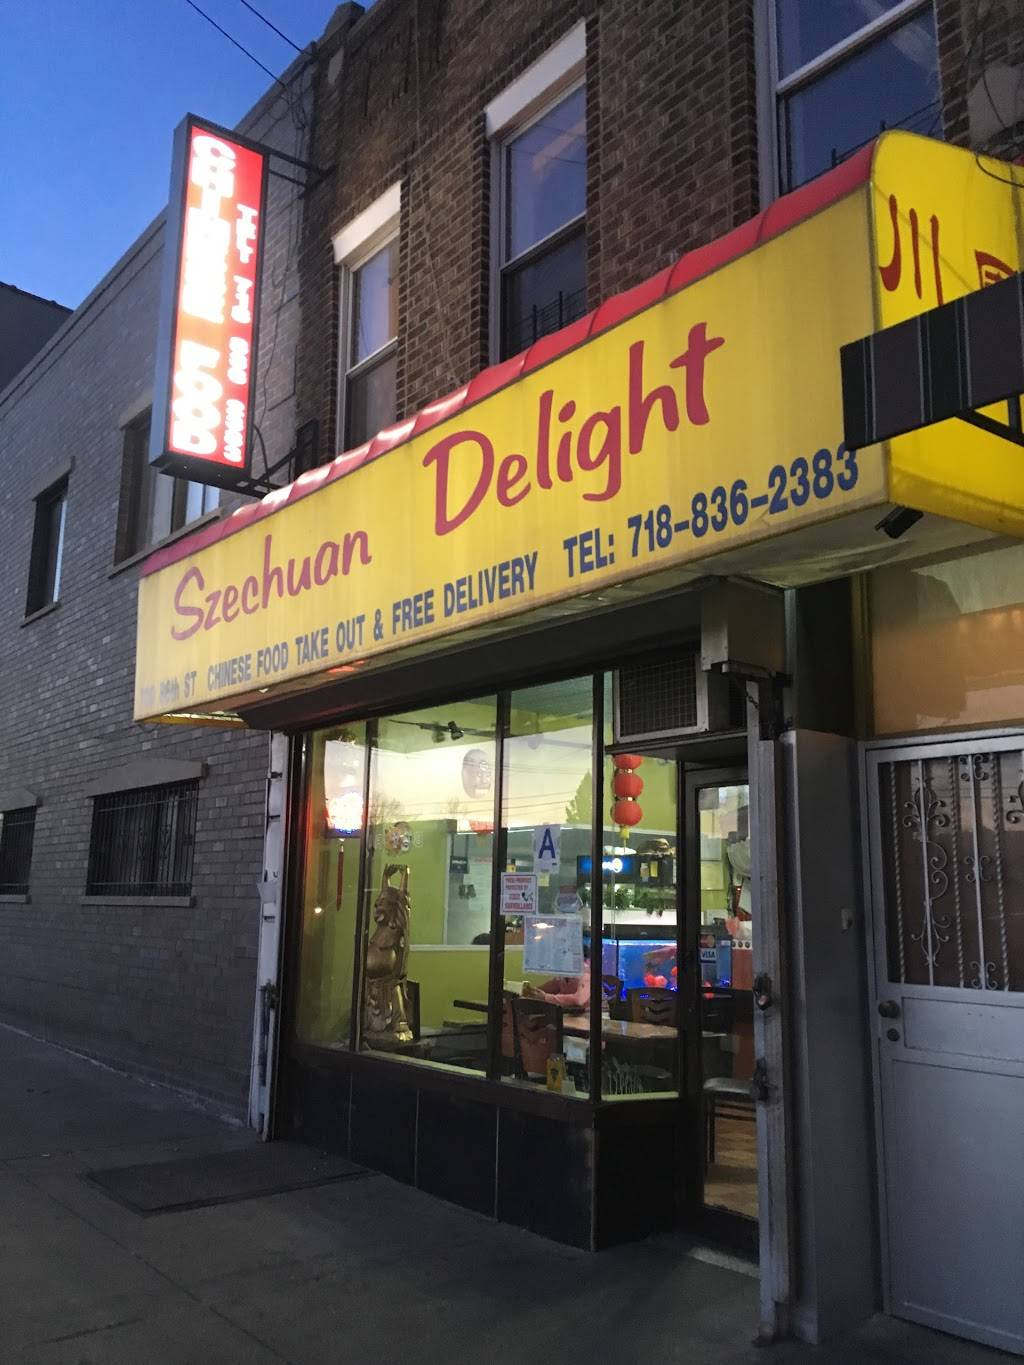 Szechuan Delight 川園 | meal takeaway | 709 86th St, Brooklyn, NY 11228, USA | 7188362383 OR +1 718-836-2383